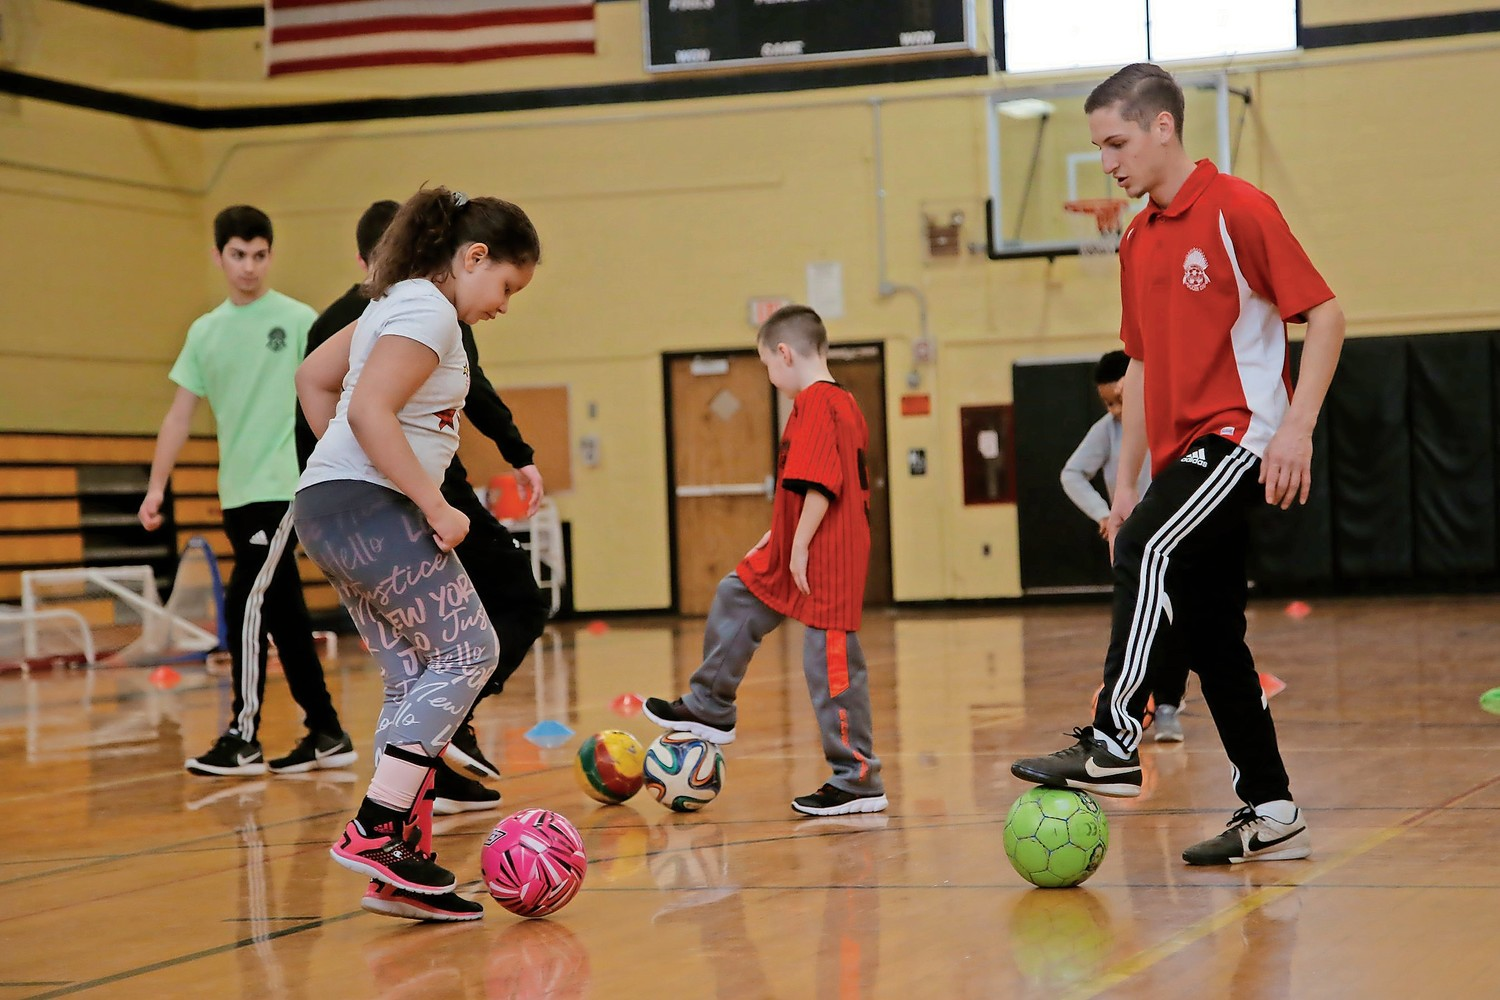 Nick Tornambene, a trainer with the West Hempstead Chiefs Soccer Club, taught Logan Colnick, 9, basic footwork on Feb. 4.